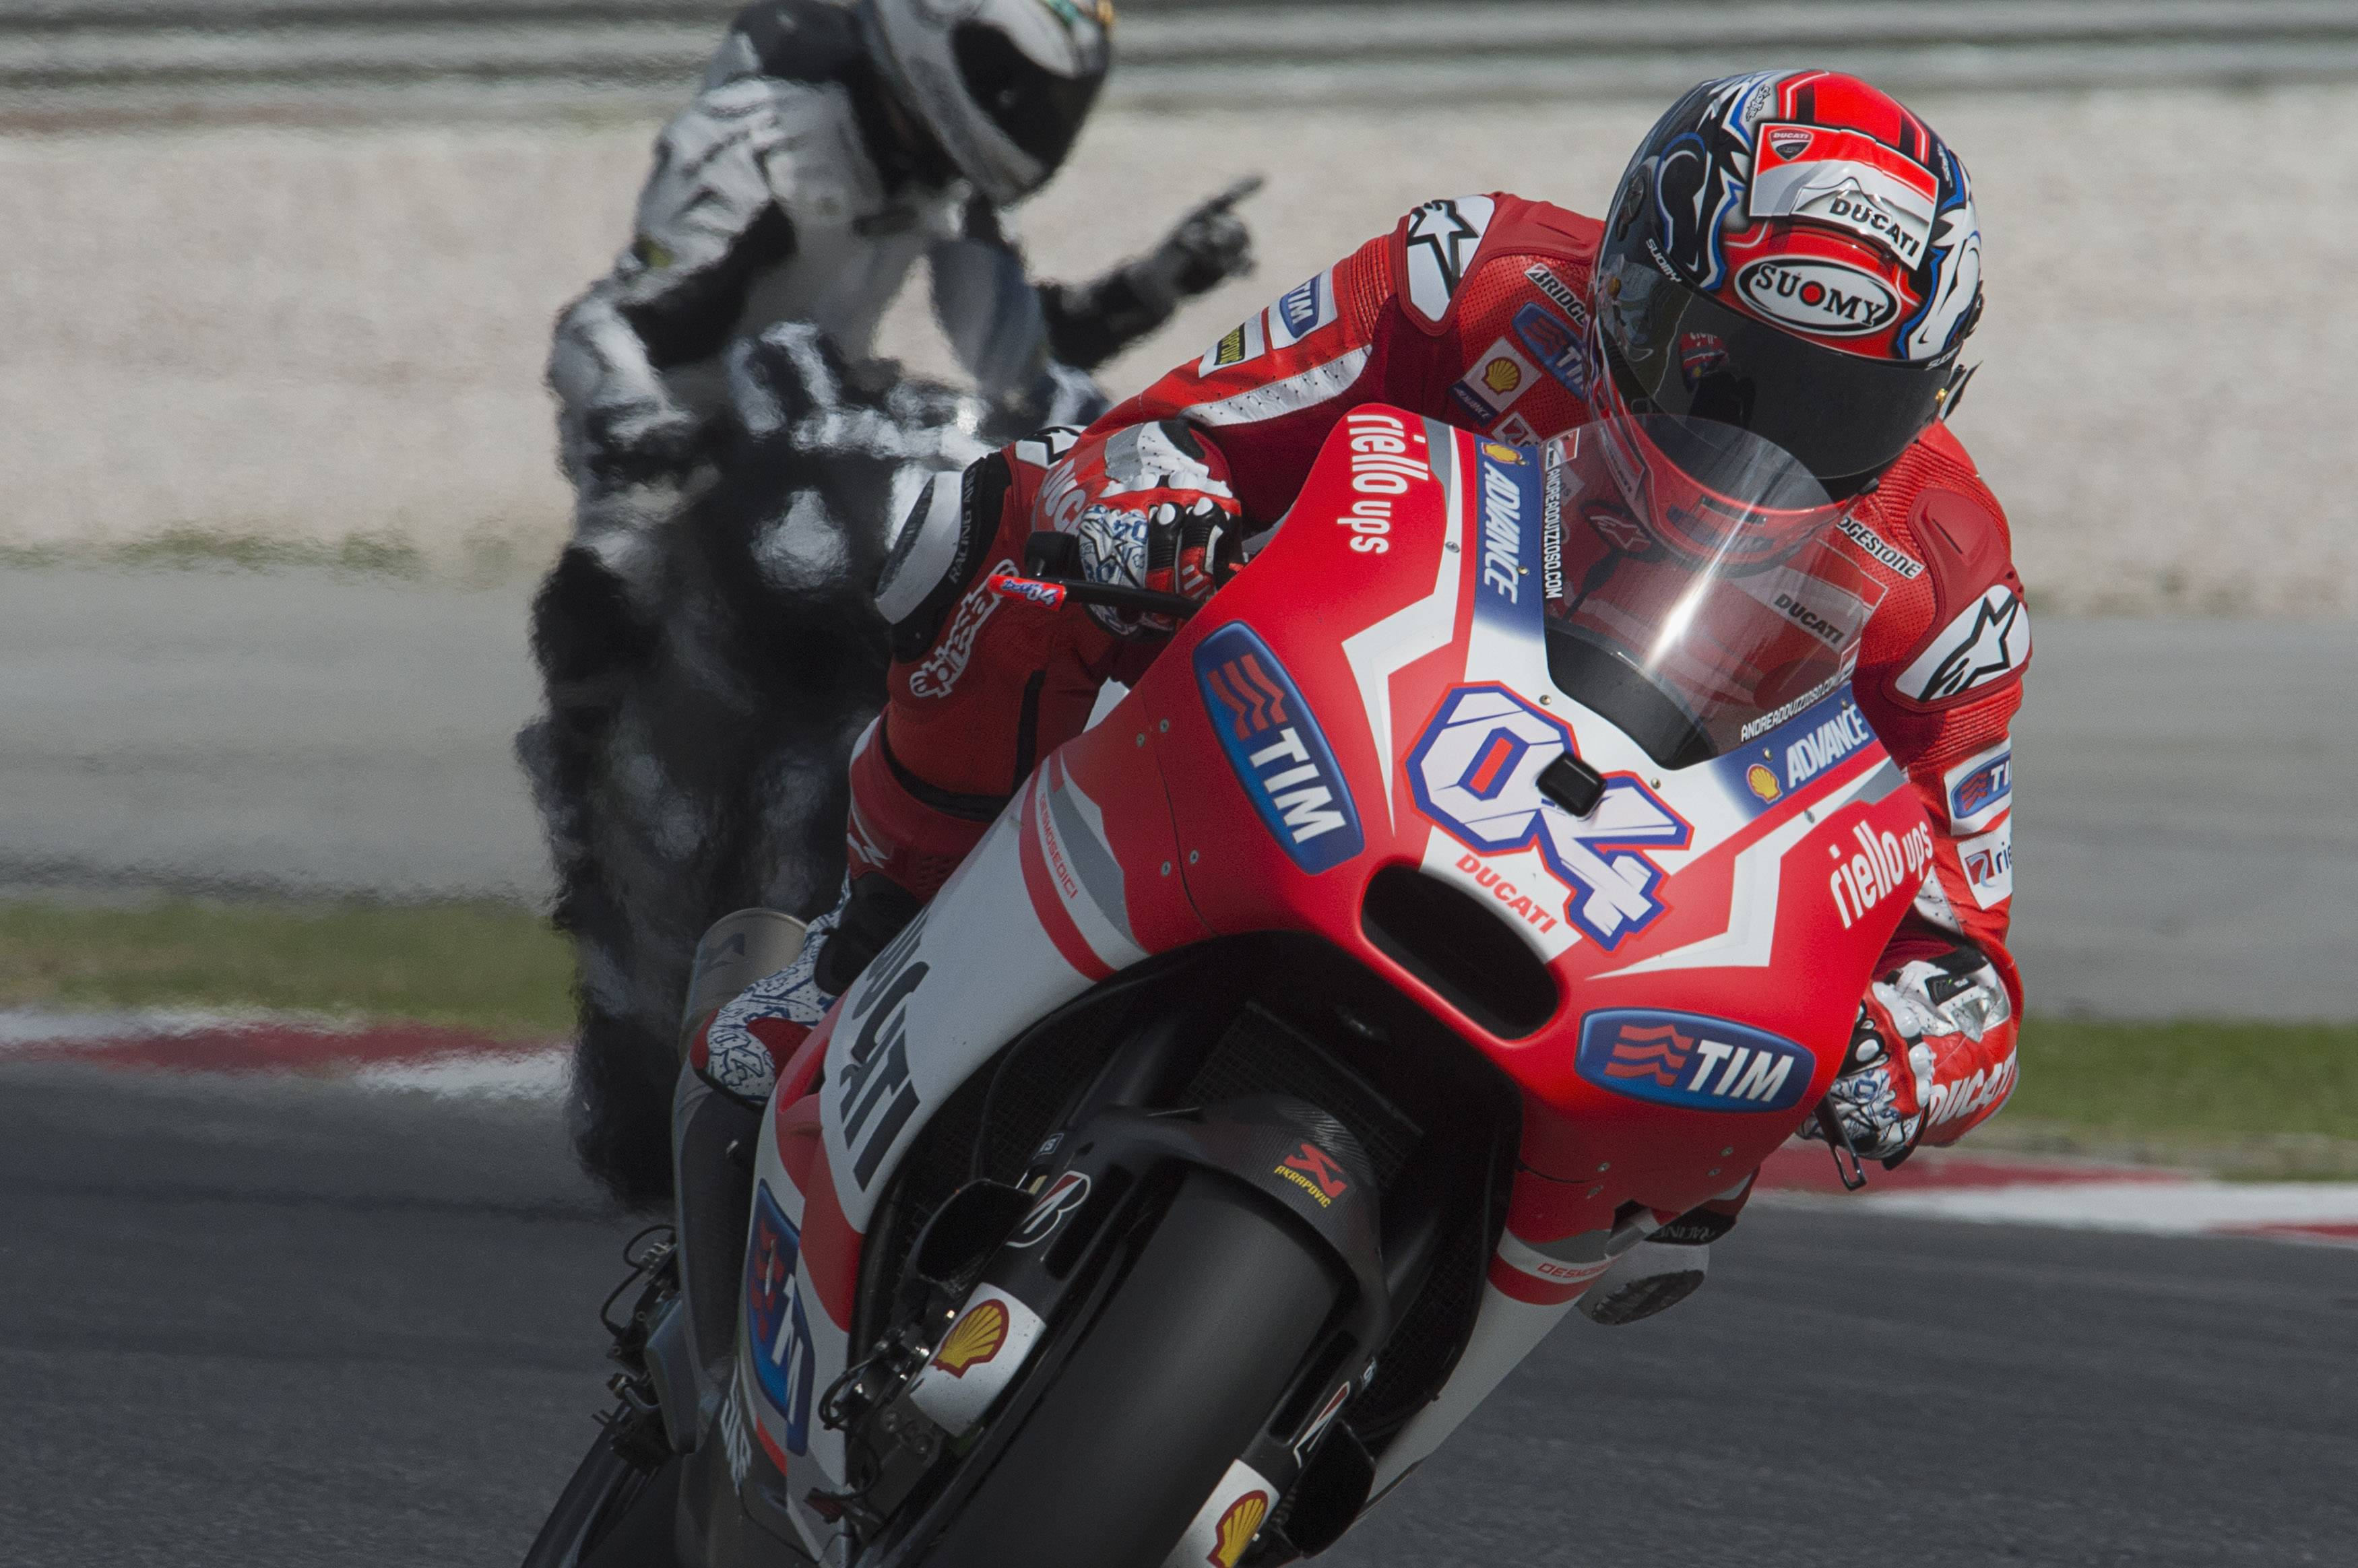 Ducati finish day two second and fifth